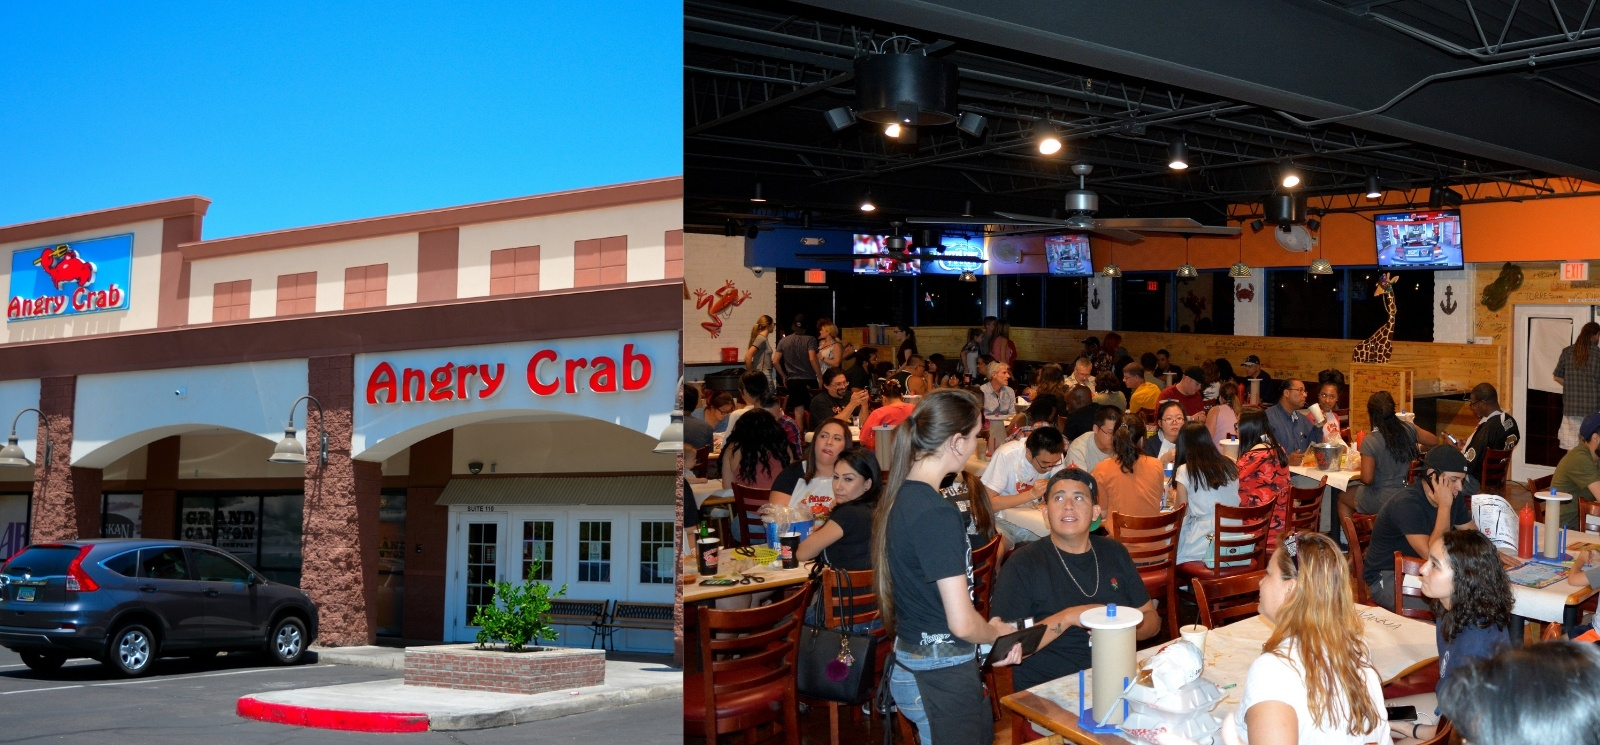 5 Years of Angry Crab Shack Growth